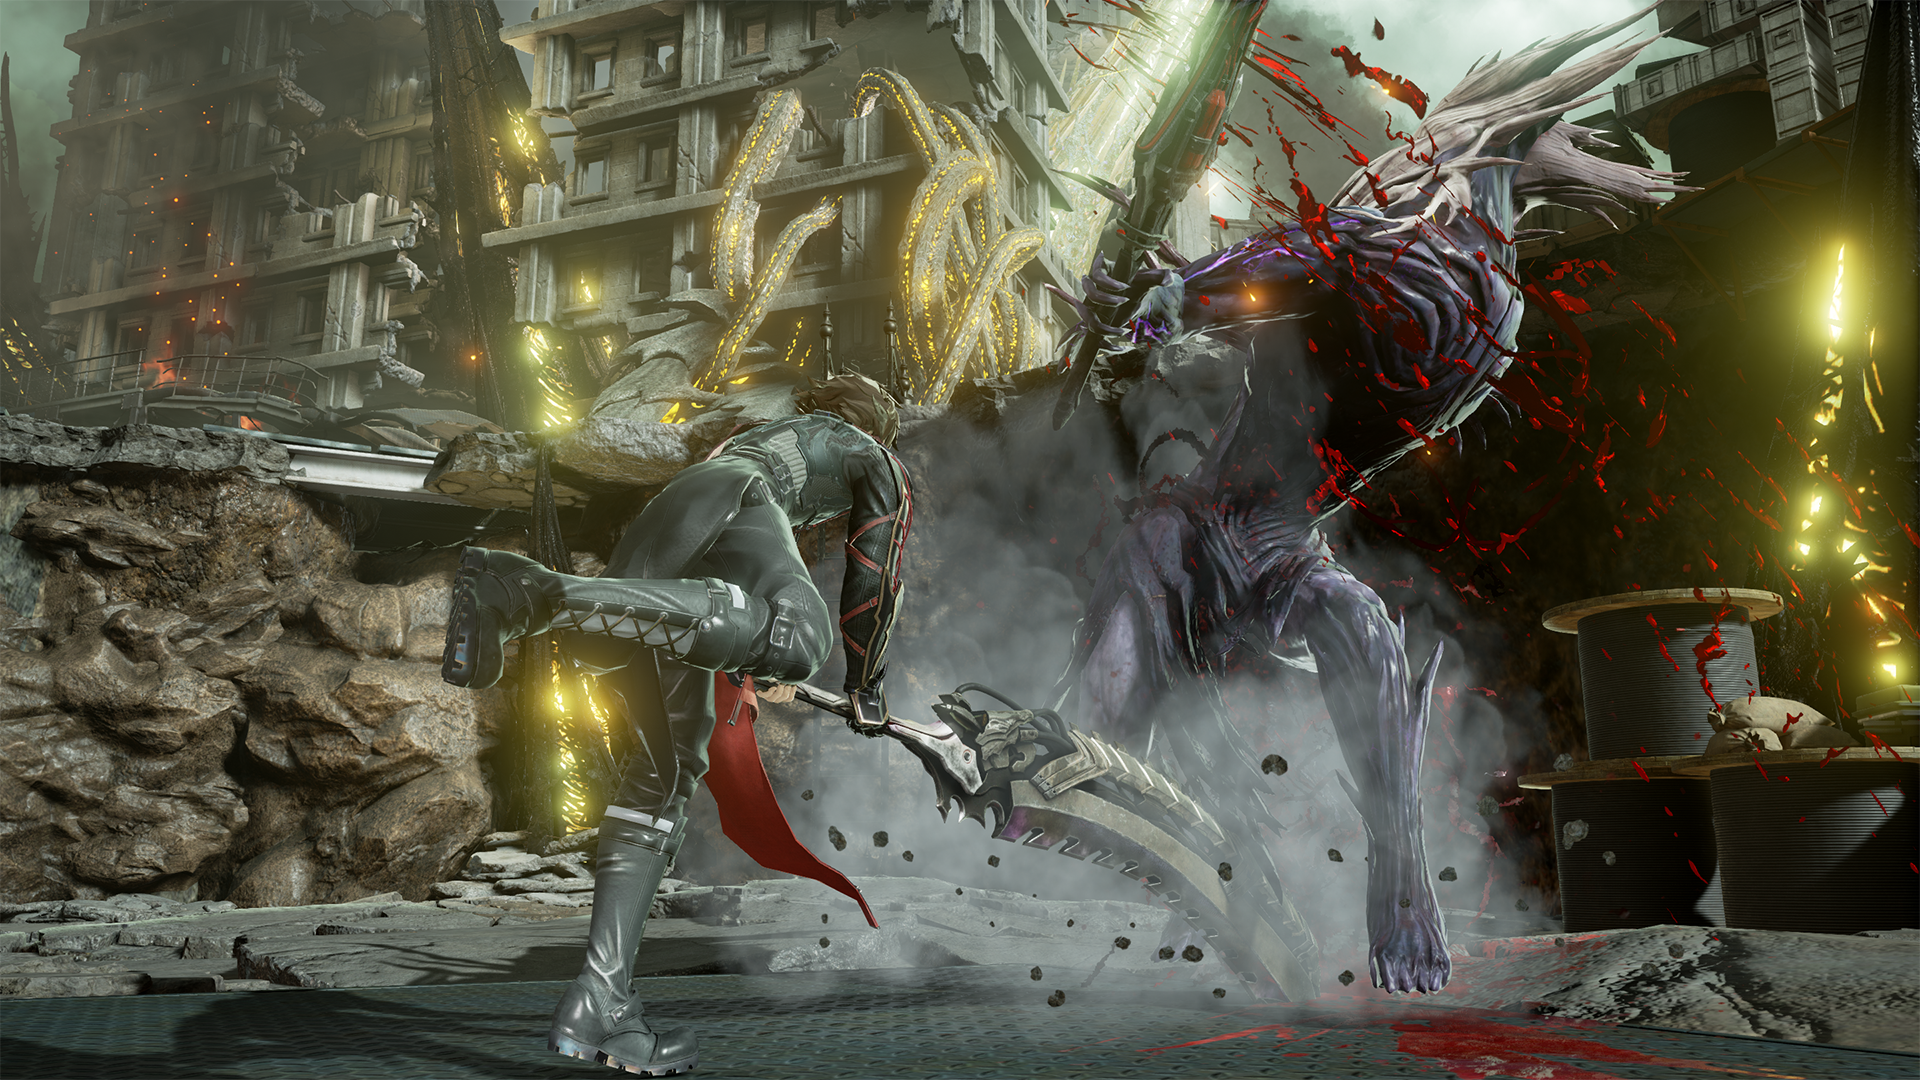 A Familiar Darkness Hands On With Dark Souls 2: Anime Dark Souls? We'll See